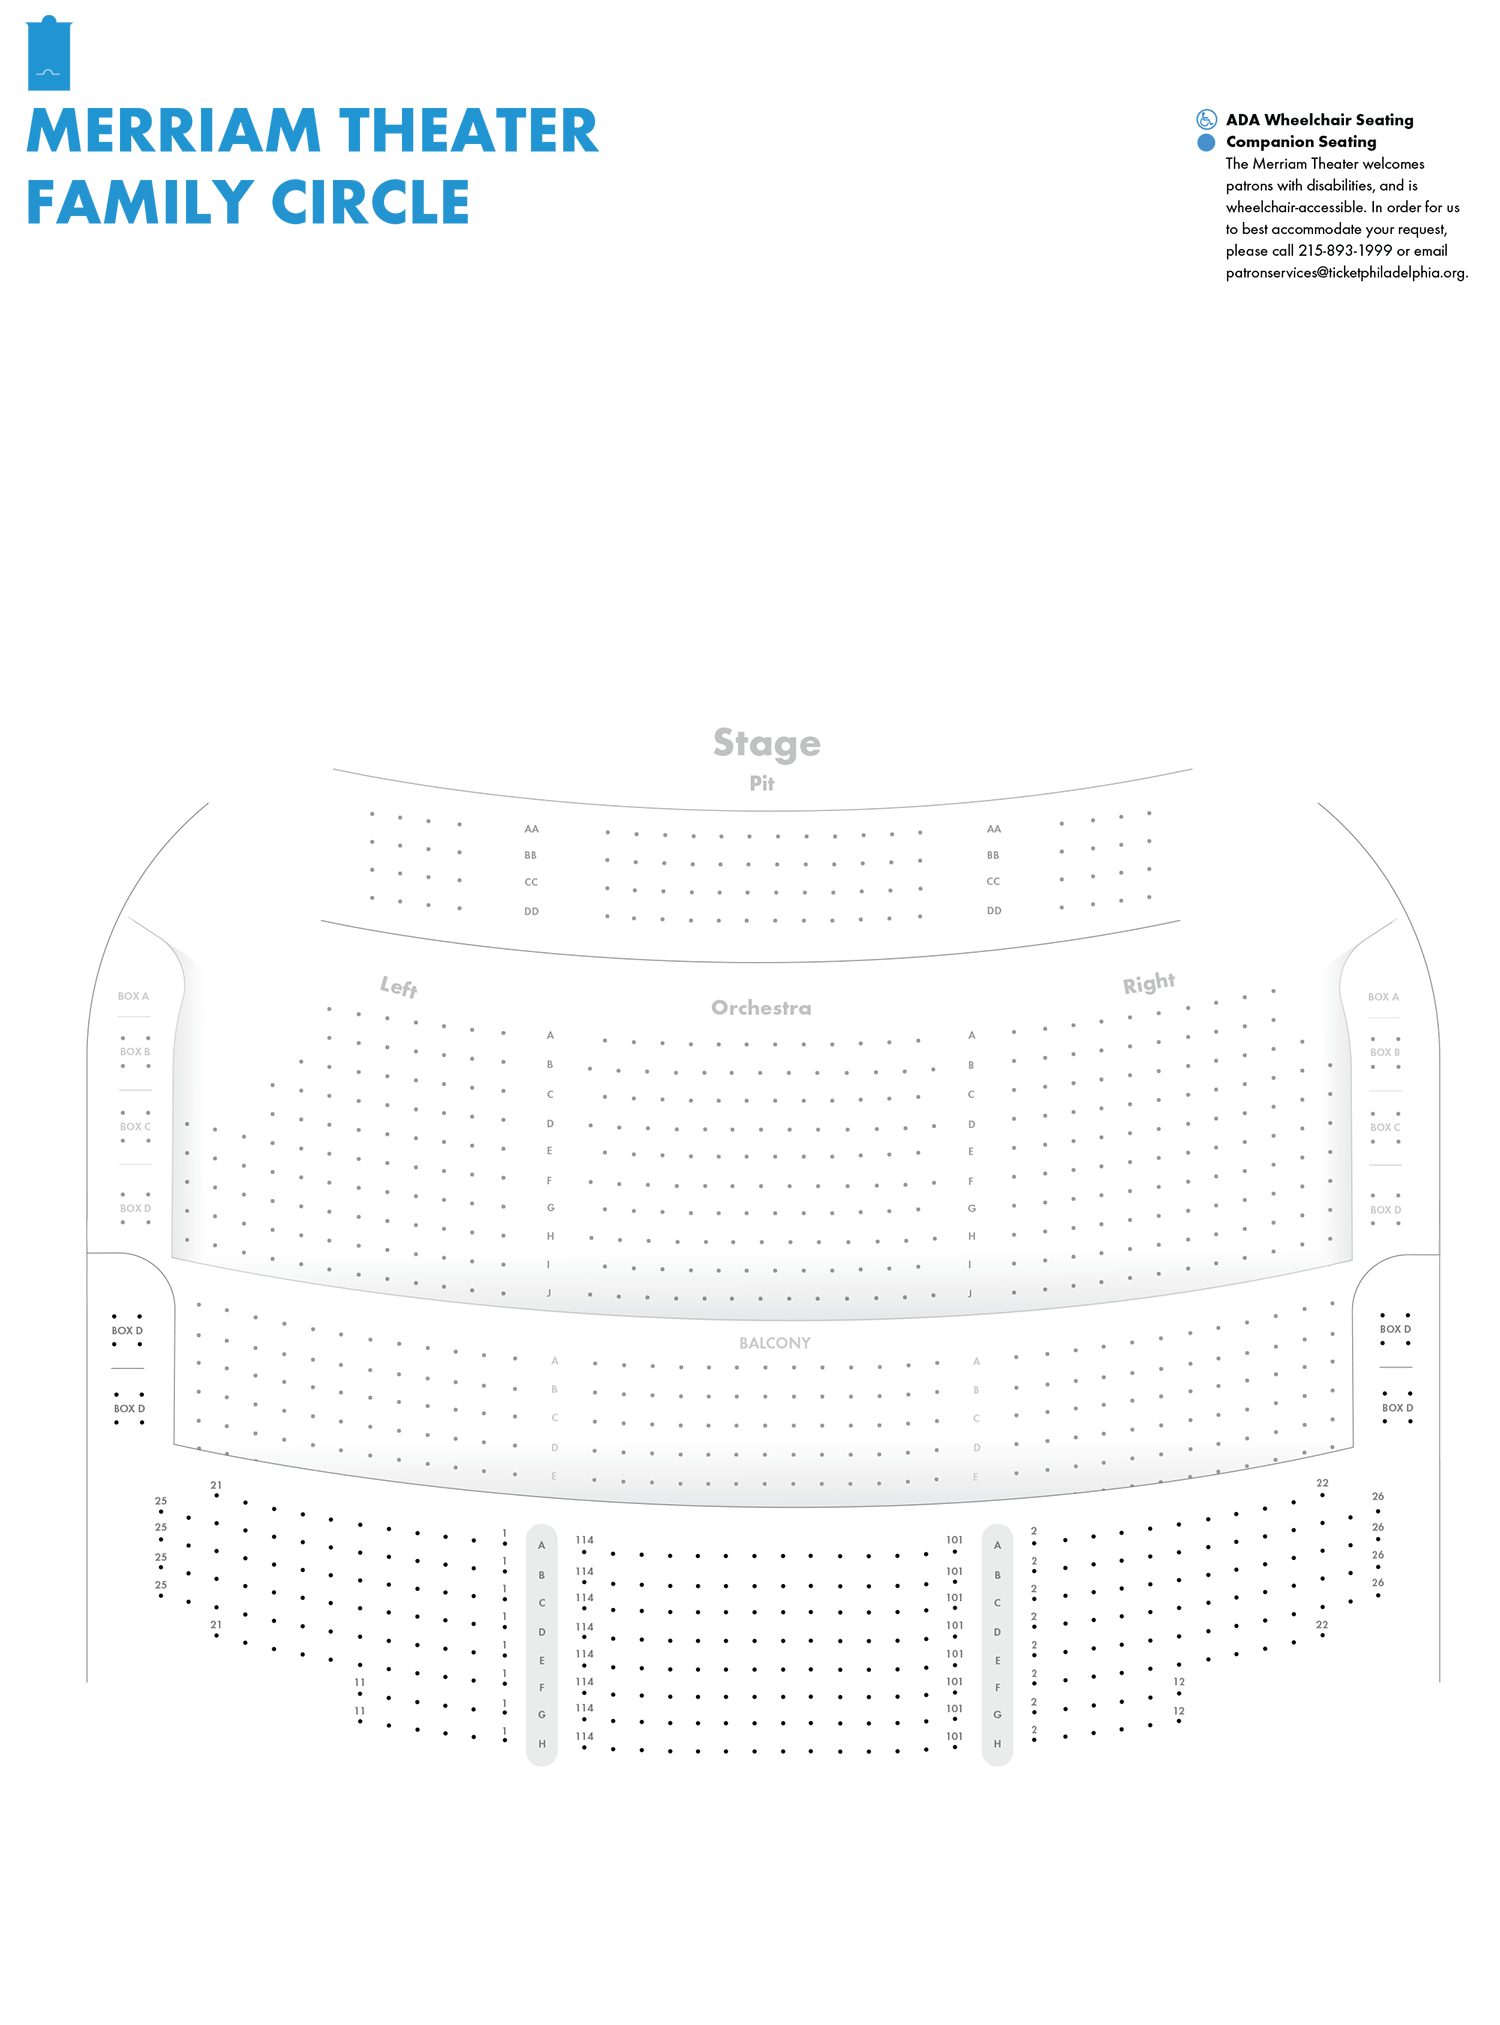 Merriam Theater Family Circle Seating Chart